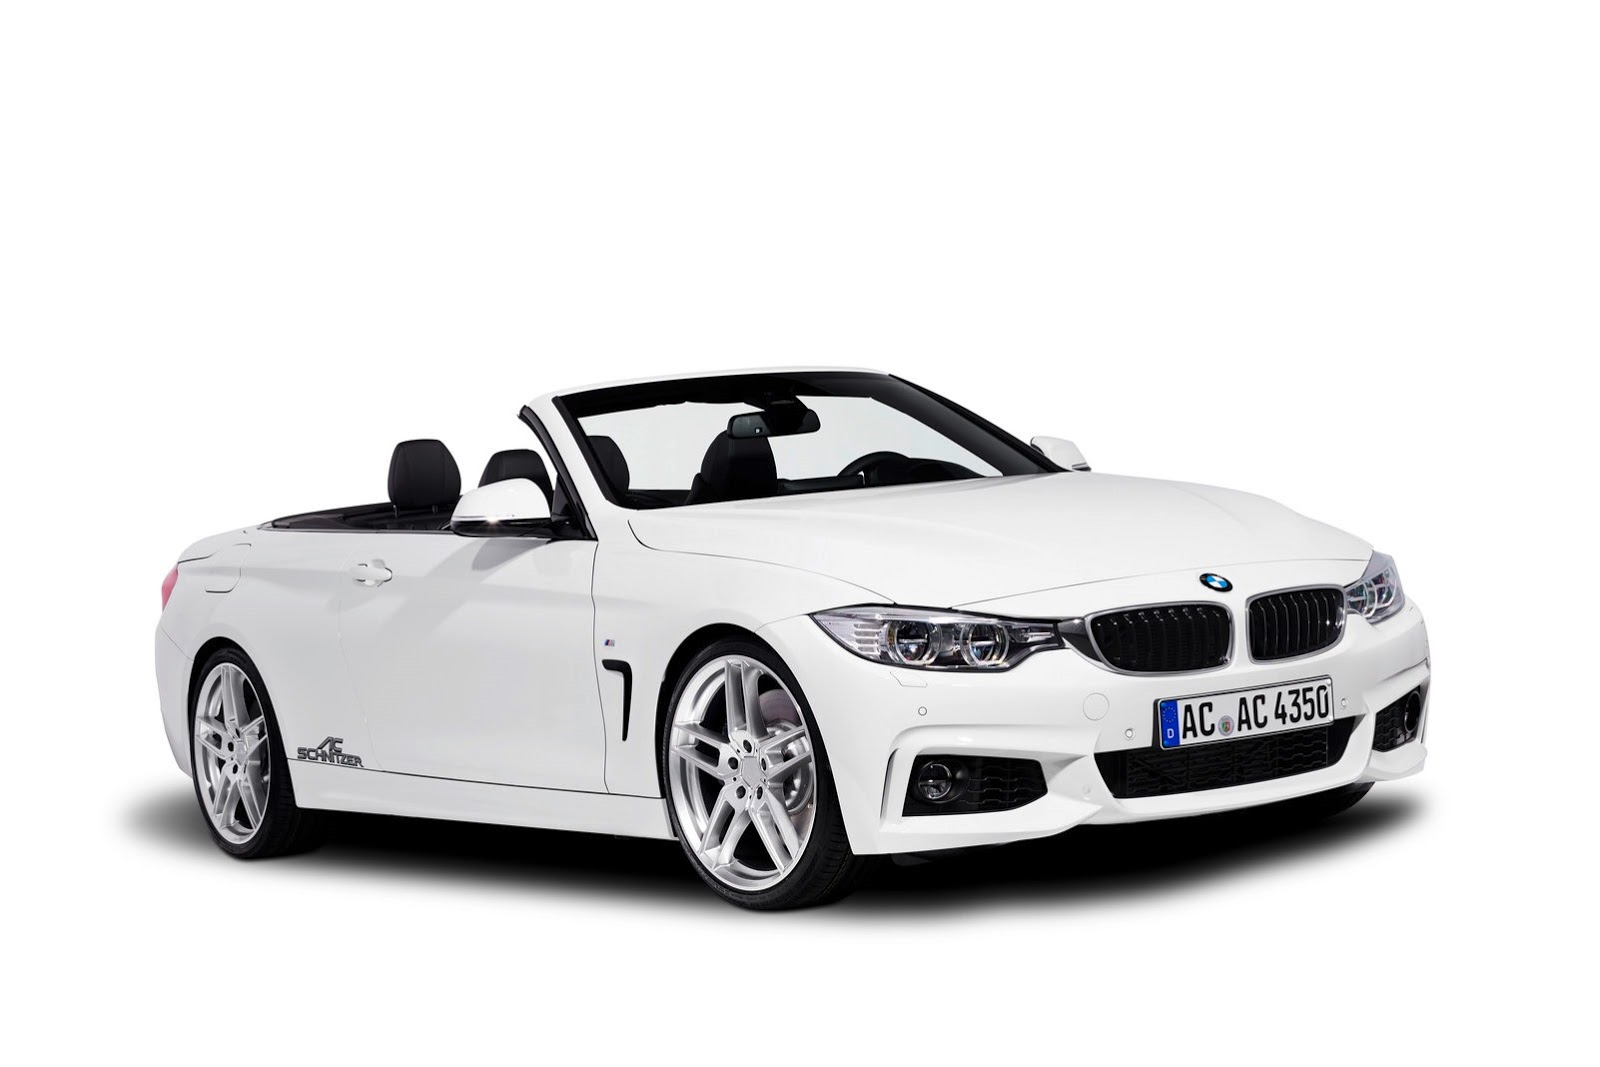 official bmw 4 series convertible upgrades by ac. Black Bedroom Furniture Sets. Home Design Ideas